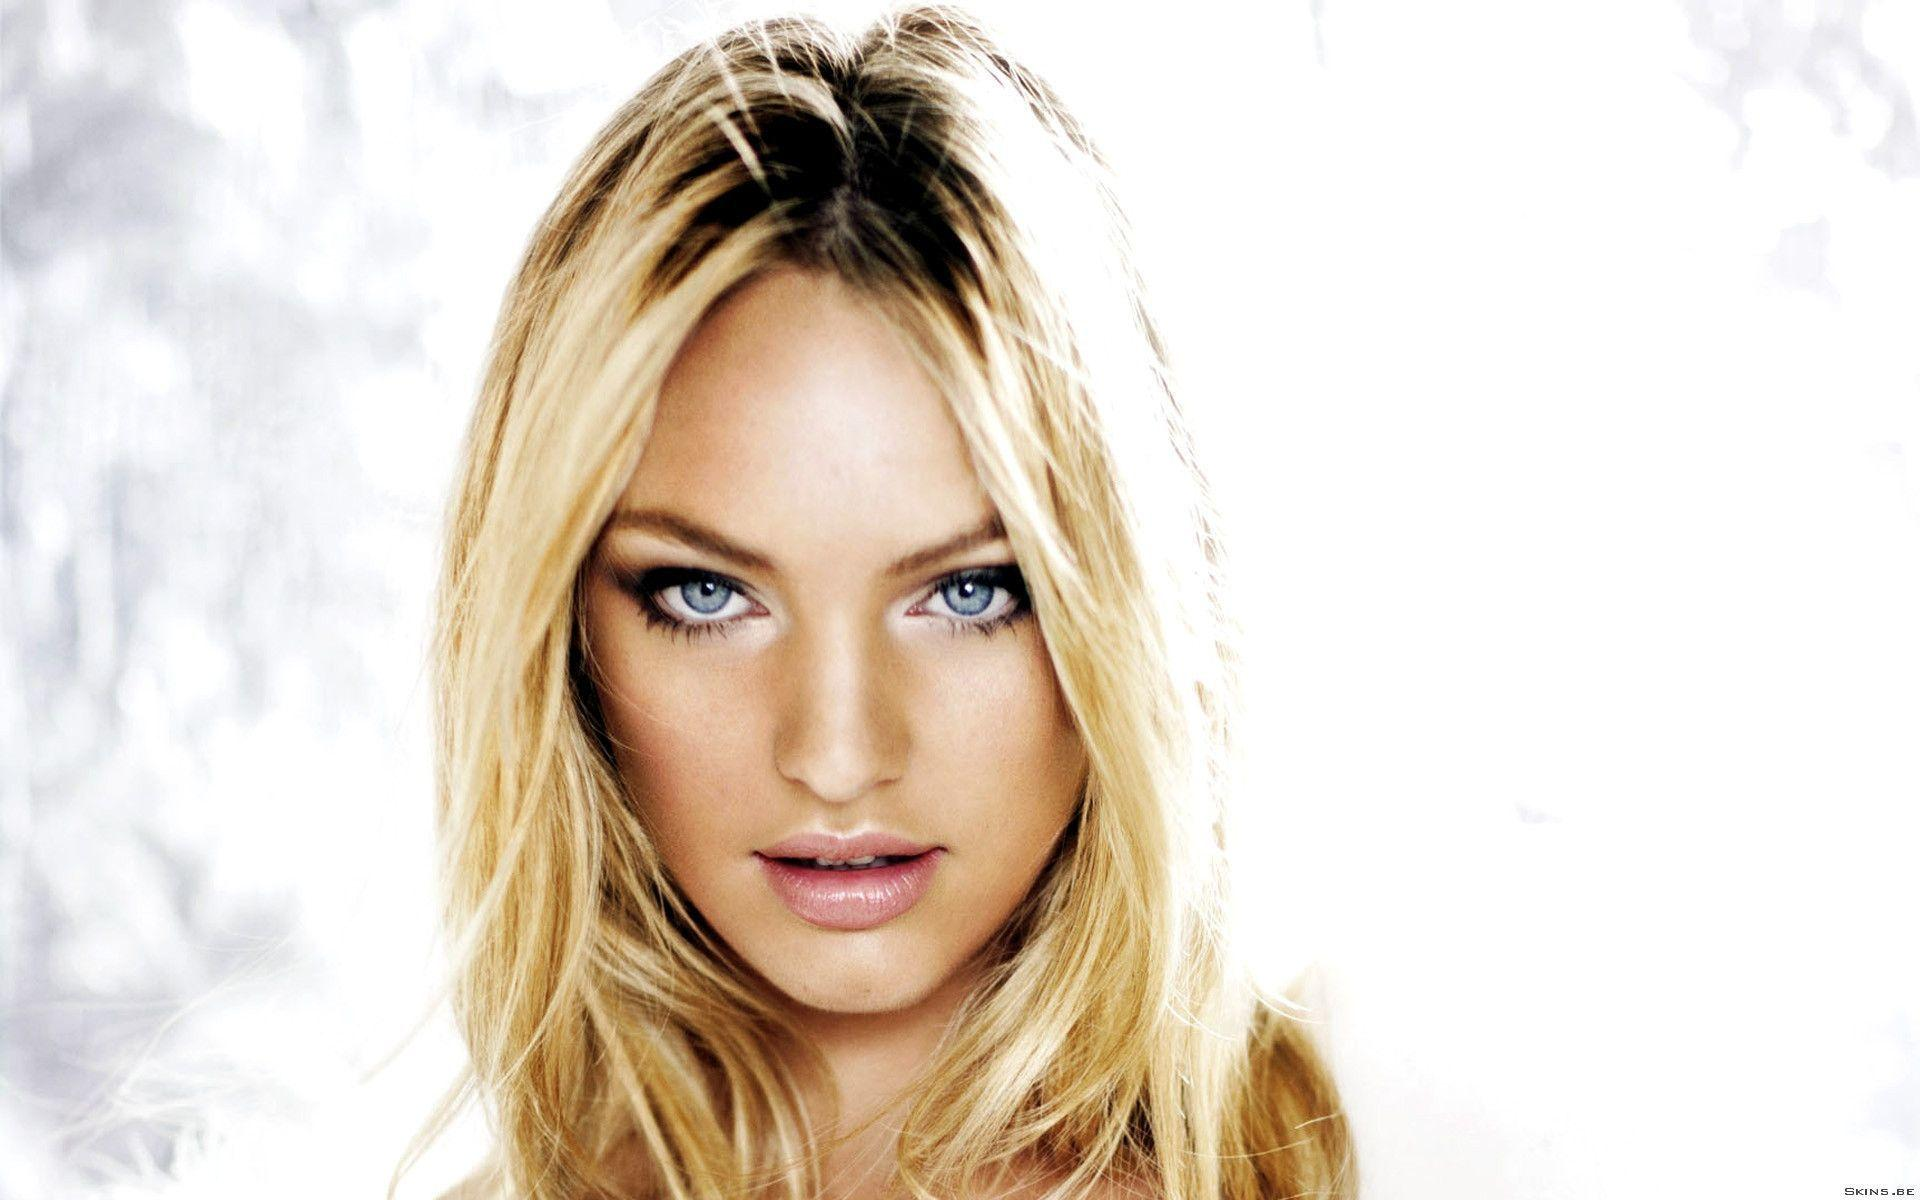 Candice Swanepoel Wallpapers | HD Wallpapers Base